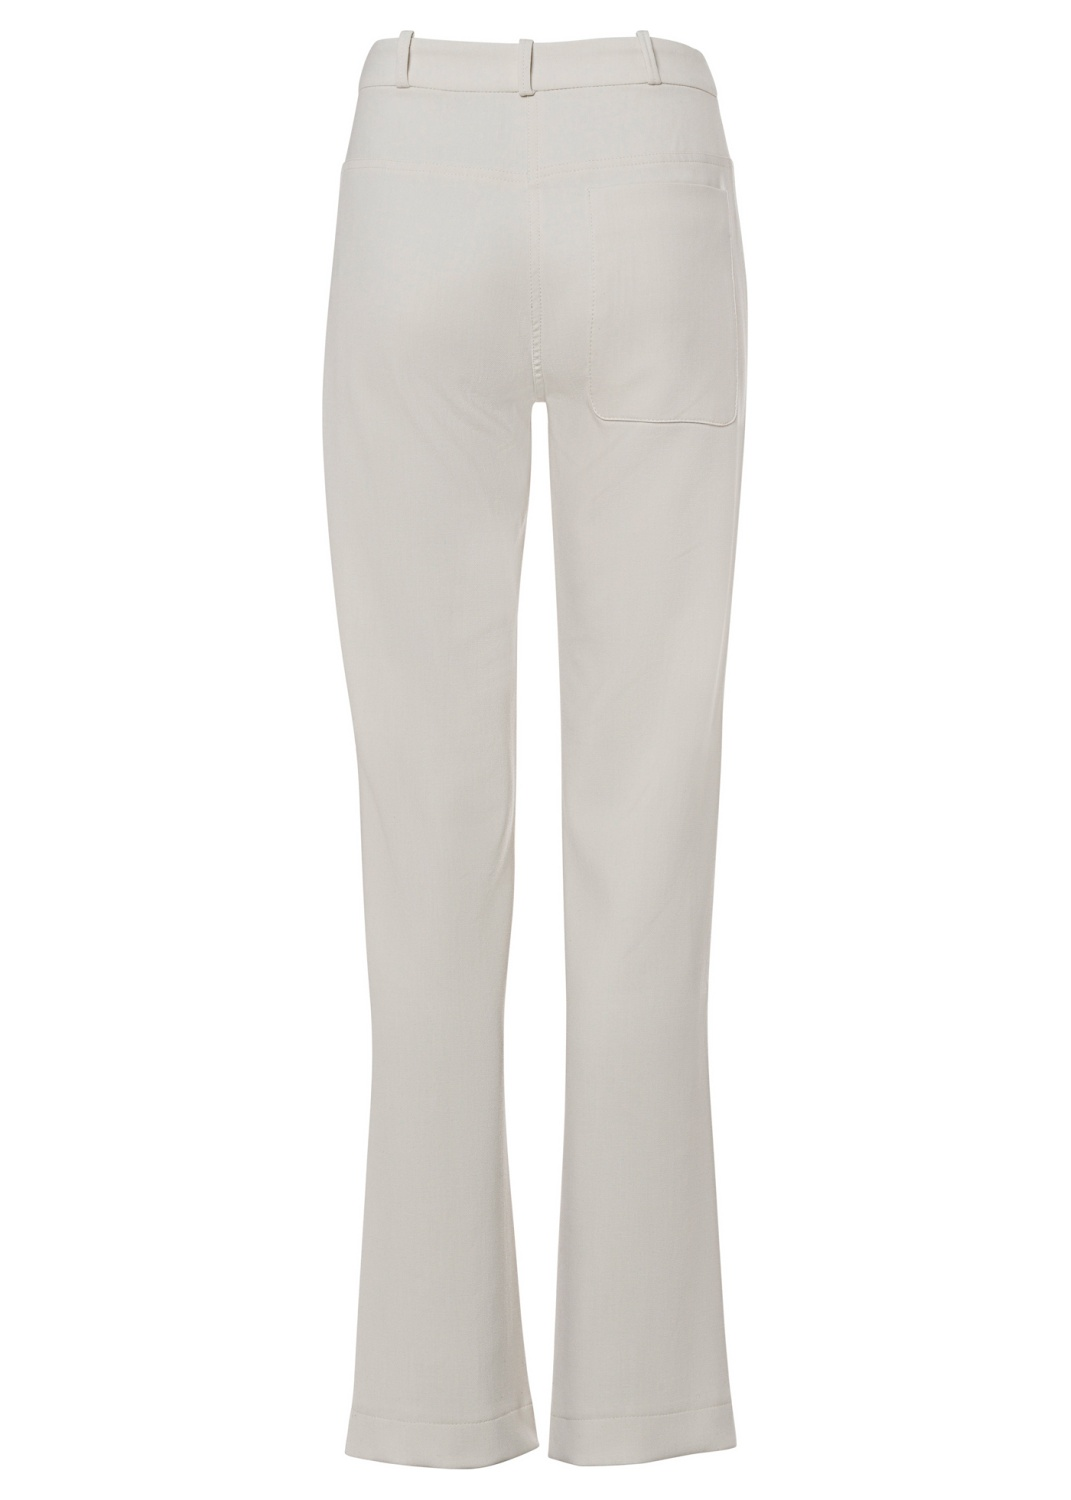 TIGHT HIGH WAIST PANTS WITH SLITS image number 1